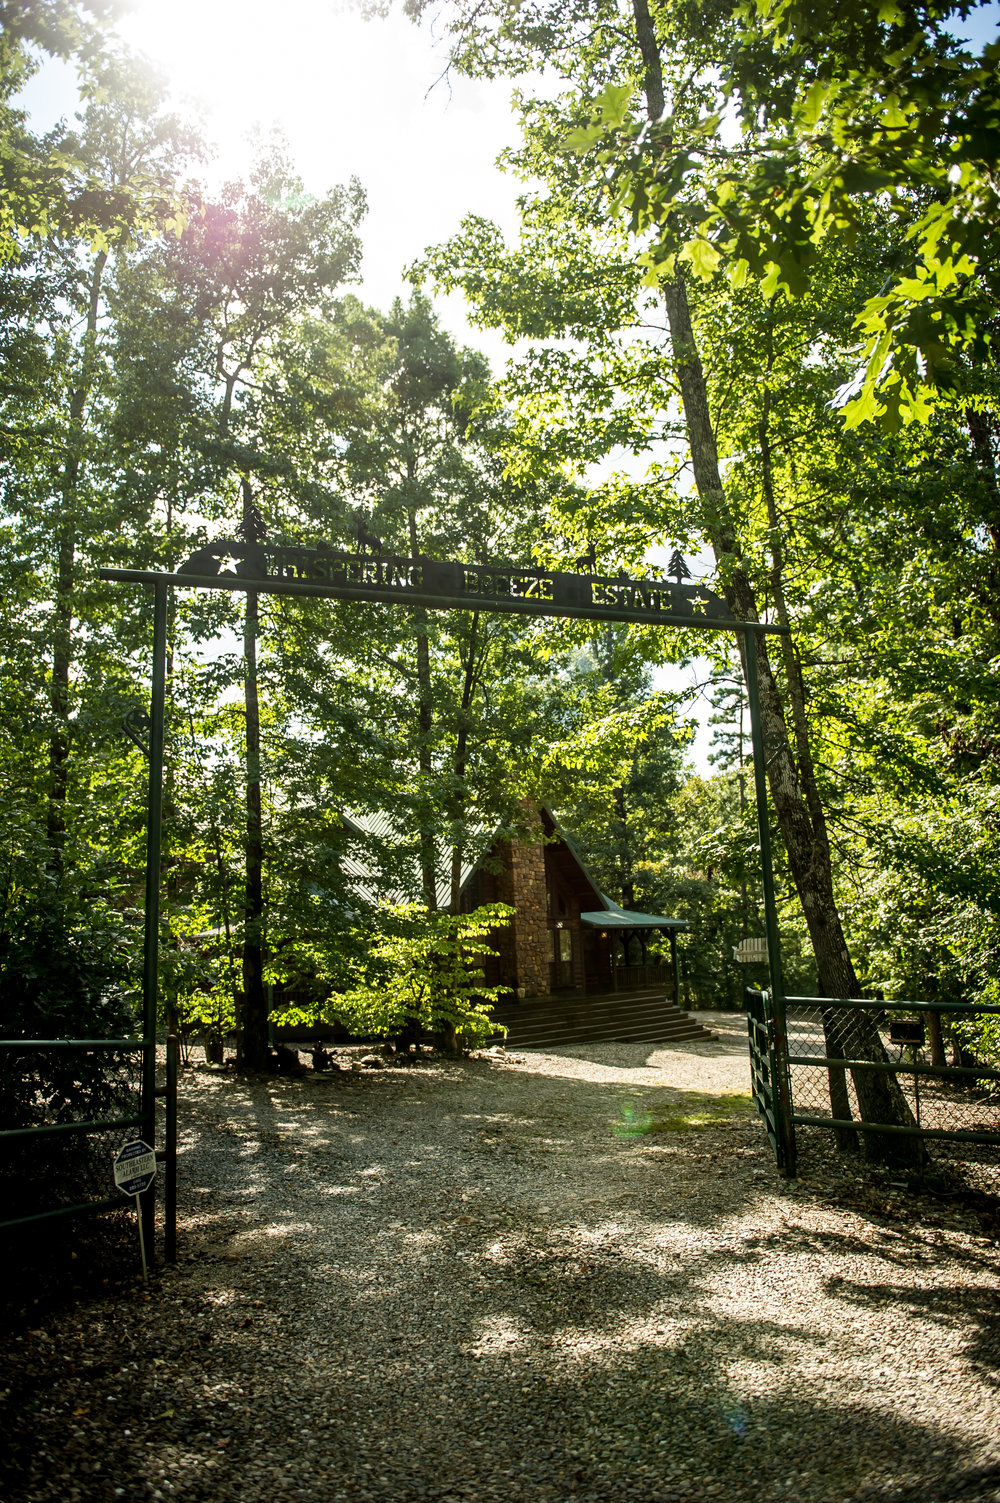 Whispering Breeze Estate Entrance.jpg.jpg